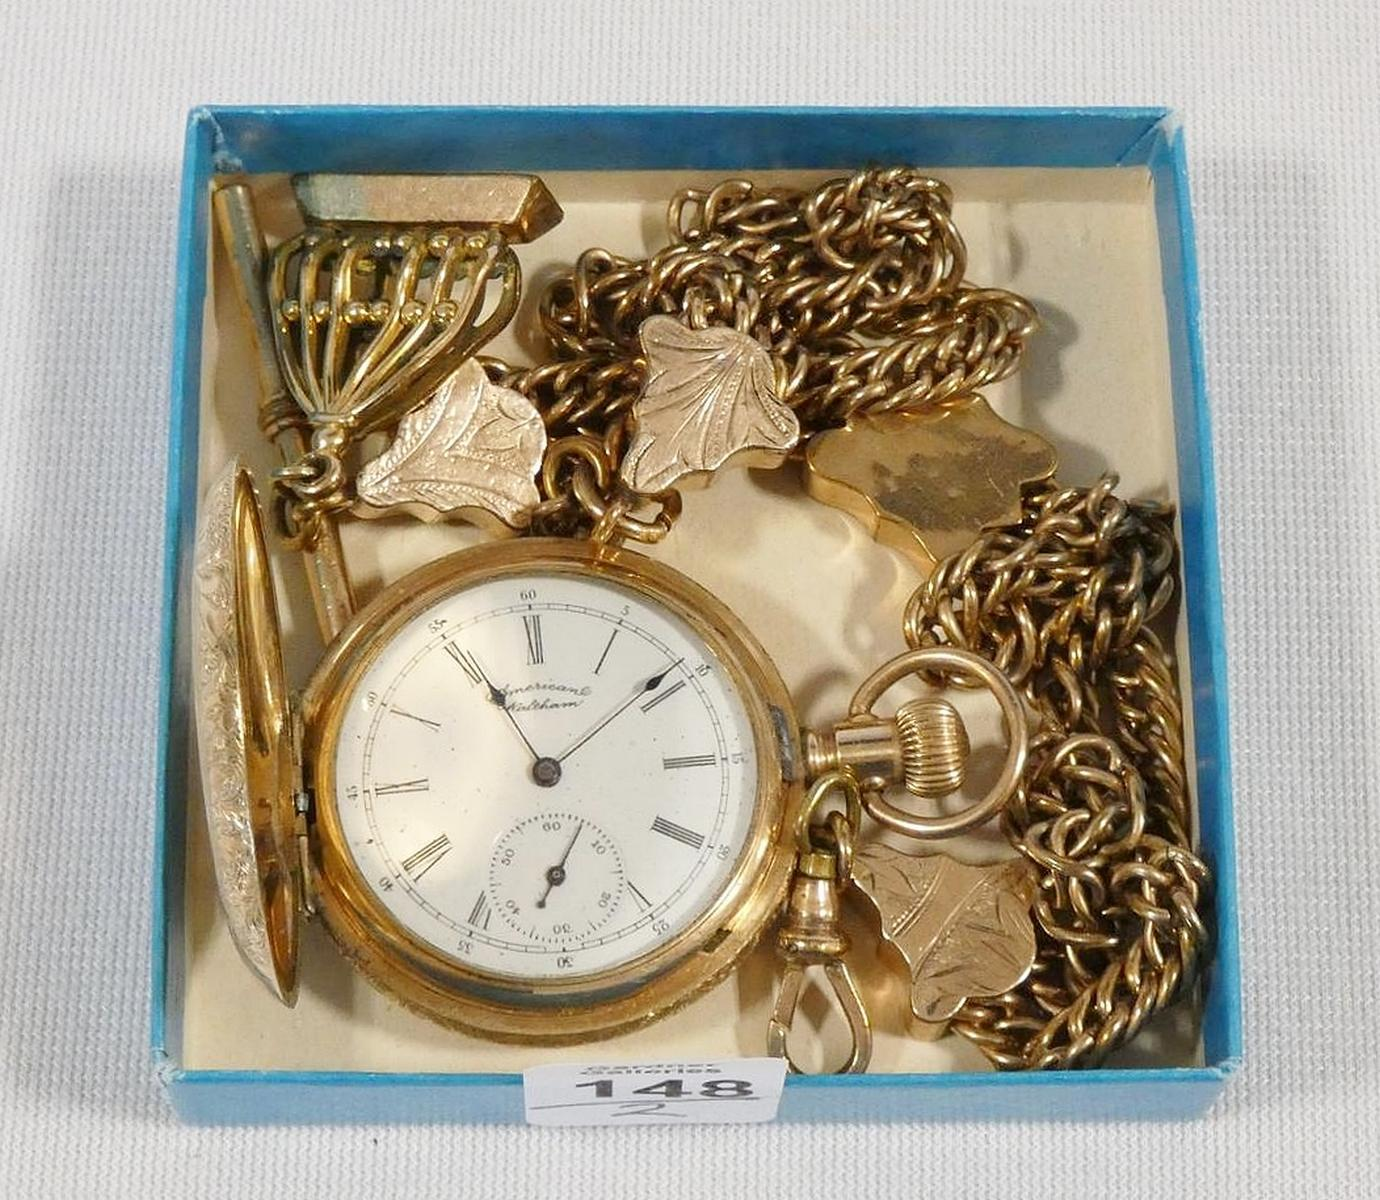 WALTHAM POCKET WATCH AND CHAIN